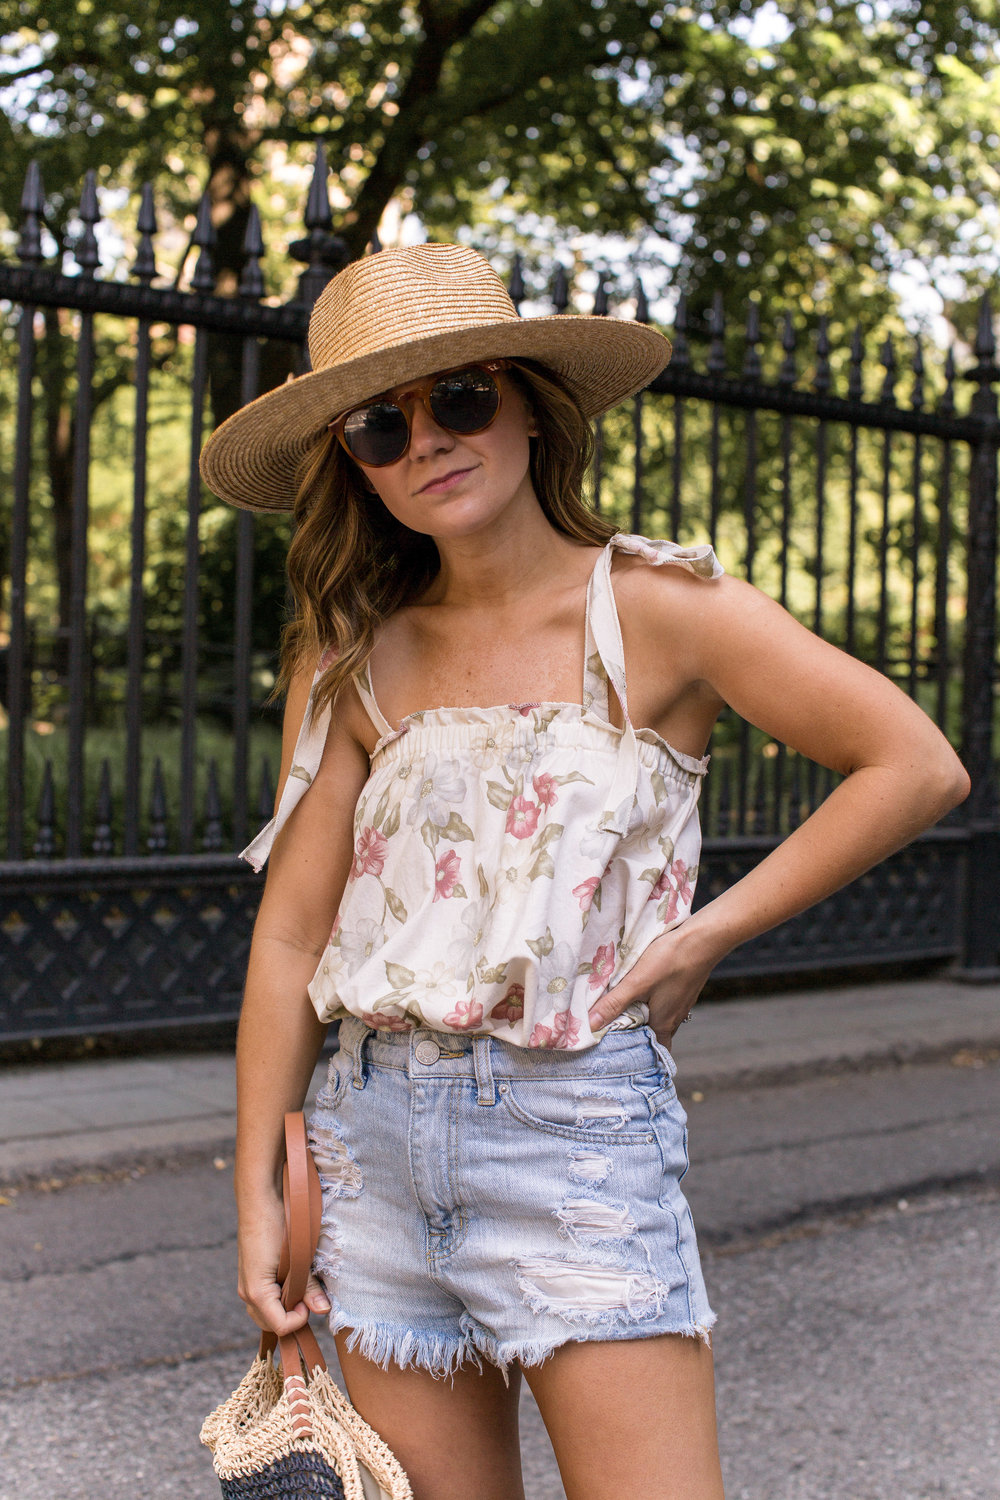 fizz-fade-summer-city-florals-11.jpg